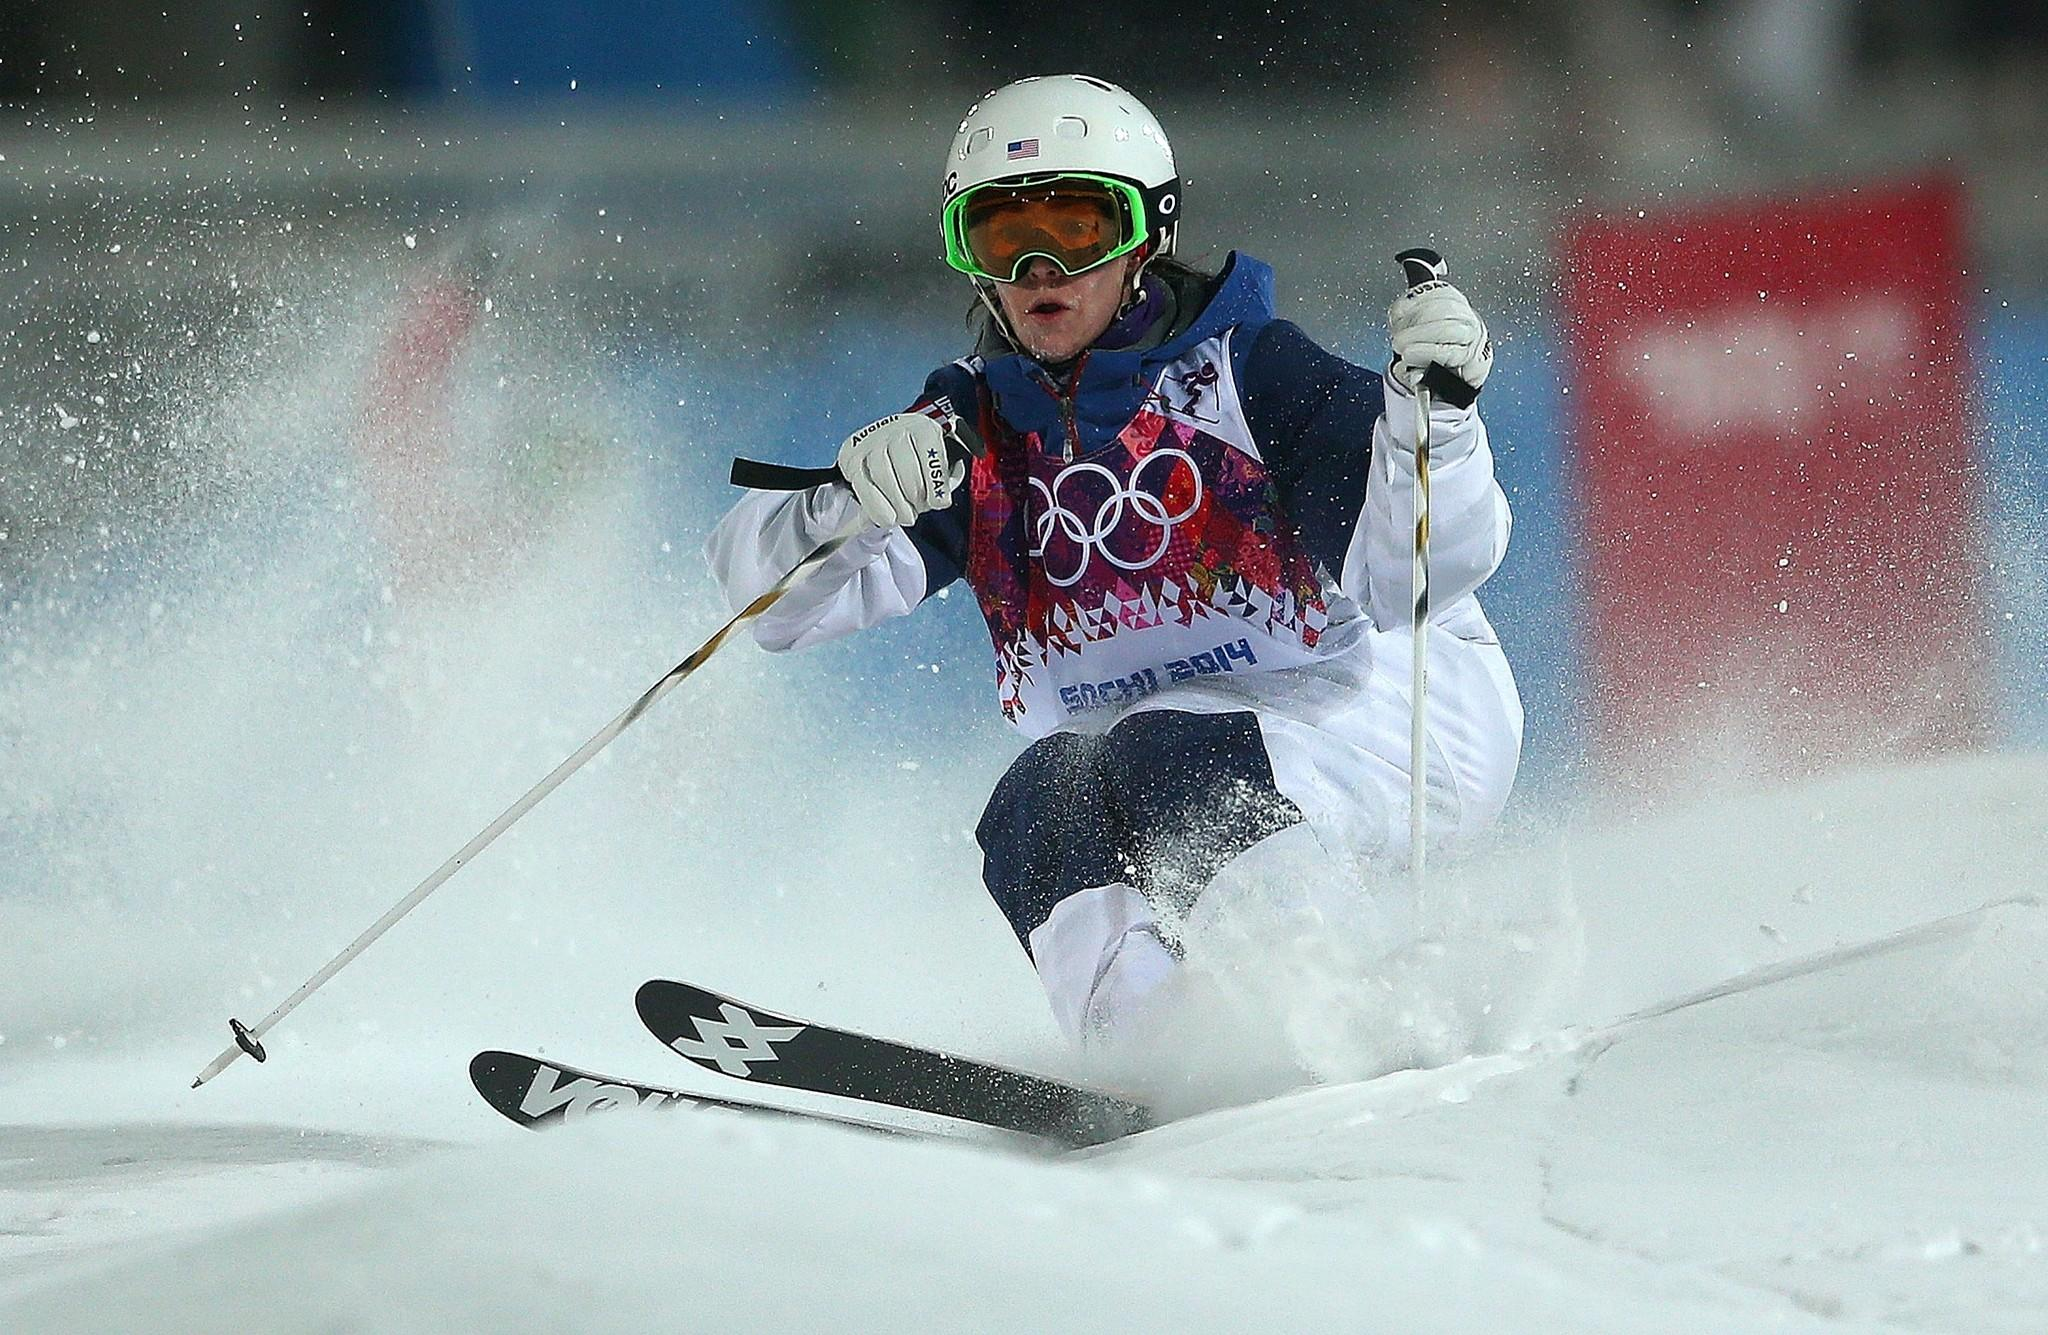 Hannah Kearney practices during training for Moguls competition at the Extreme Park at Rosa Khutor Mountain.